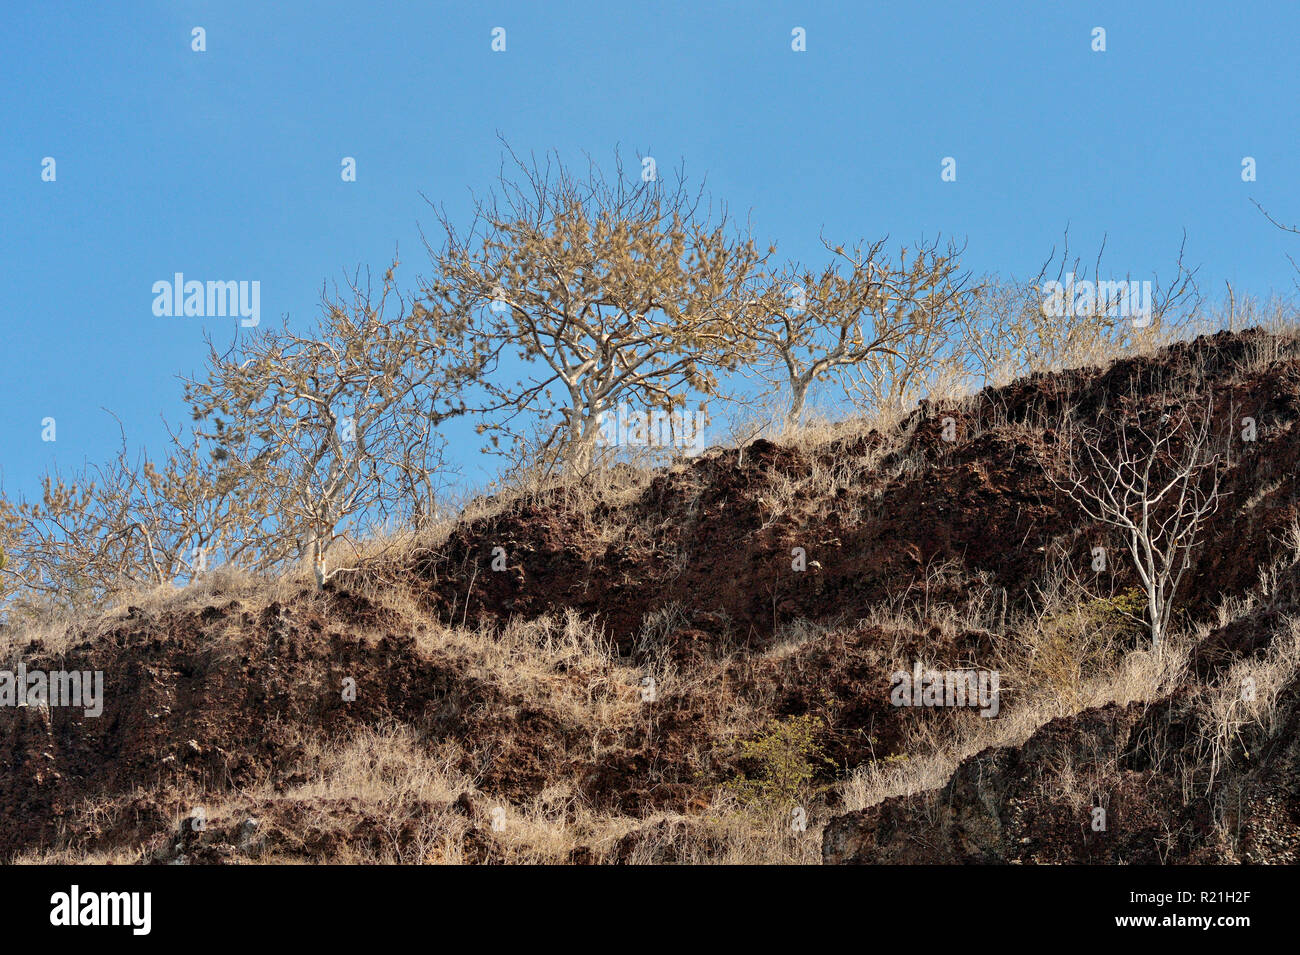 Sparse vegetation on arid, rocky cliffs of Hood Island, Galapagos Islands National Park, Espanola (Hood) Island, Ecuador - Stock Image